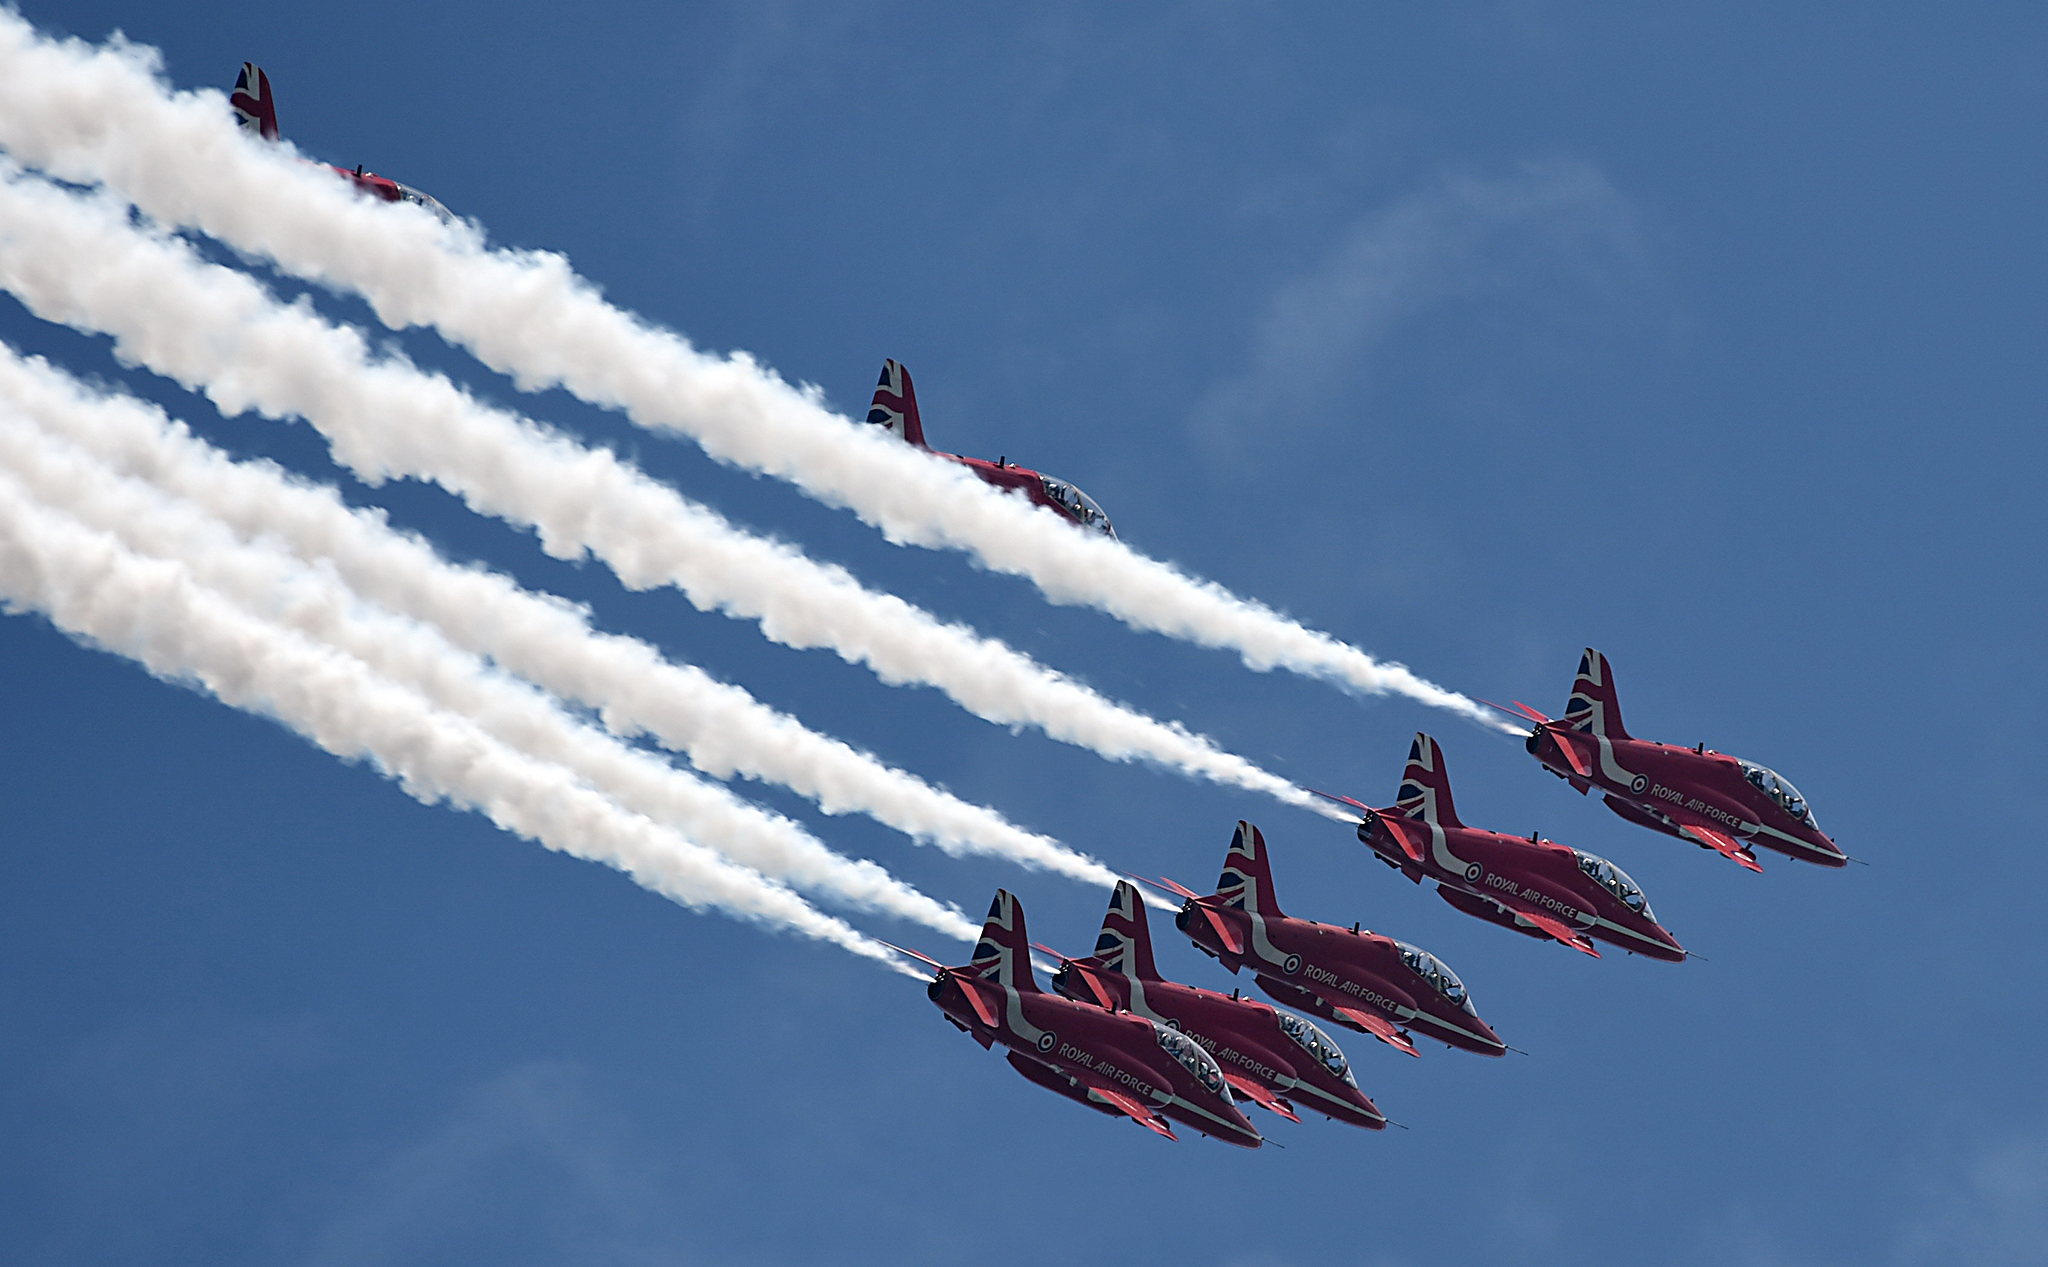 The Red Arrows aerobatic team of Britain's Royal Air Force flies over the Marina Barrage in Singapore on October 18, 2016.   The flypast which had previously been delayed twice due to inclement weather finally made their way fly past over Marina Bay on October 18, in Singapore for 20-minutes. The visit to Singapore is part of the team's visit to the Middle East and Asia, to contribute to a campaign to showcase the best of what Britain has to offer. / AFP PHOTO / ROSLAN RAHMANROSLAN RAHMAN/AFP/Getty Images